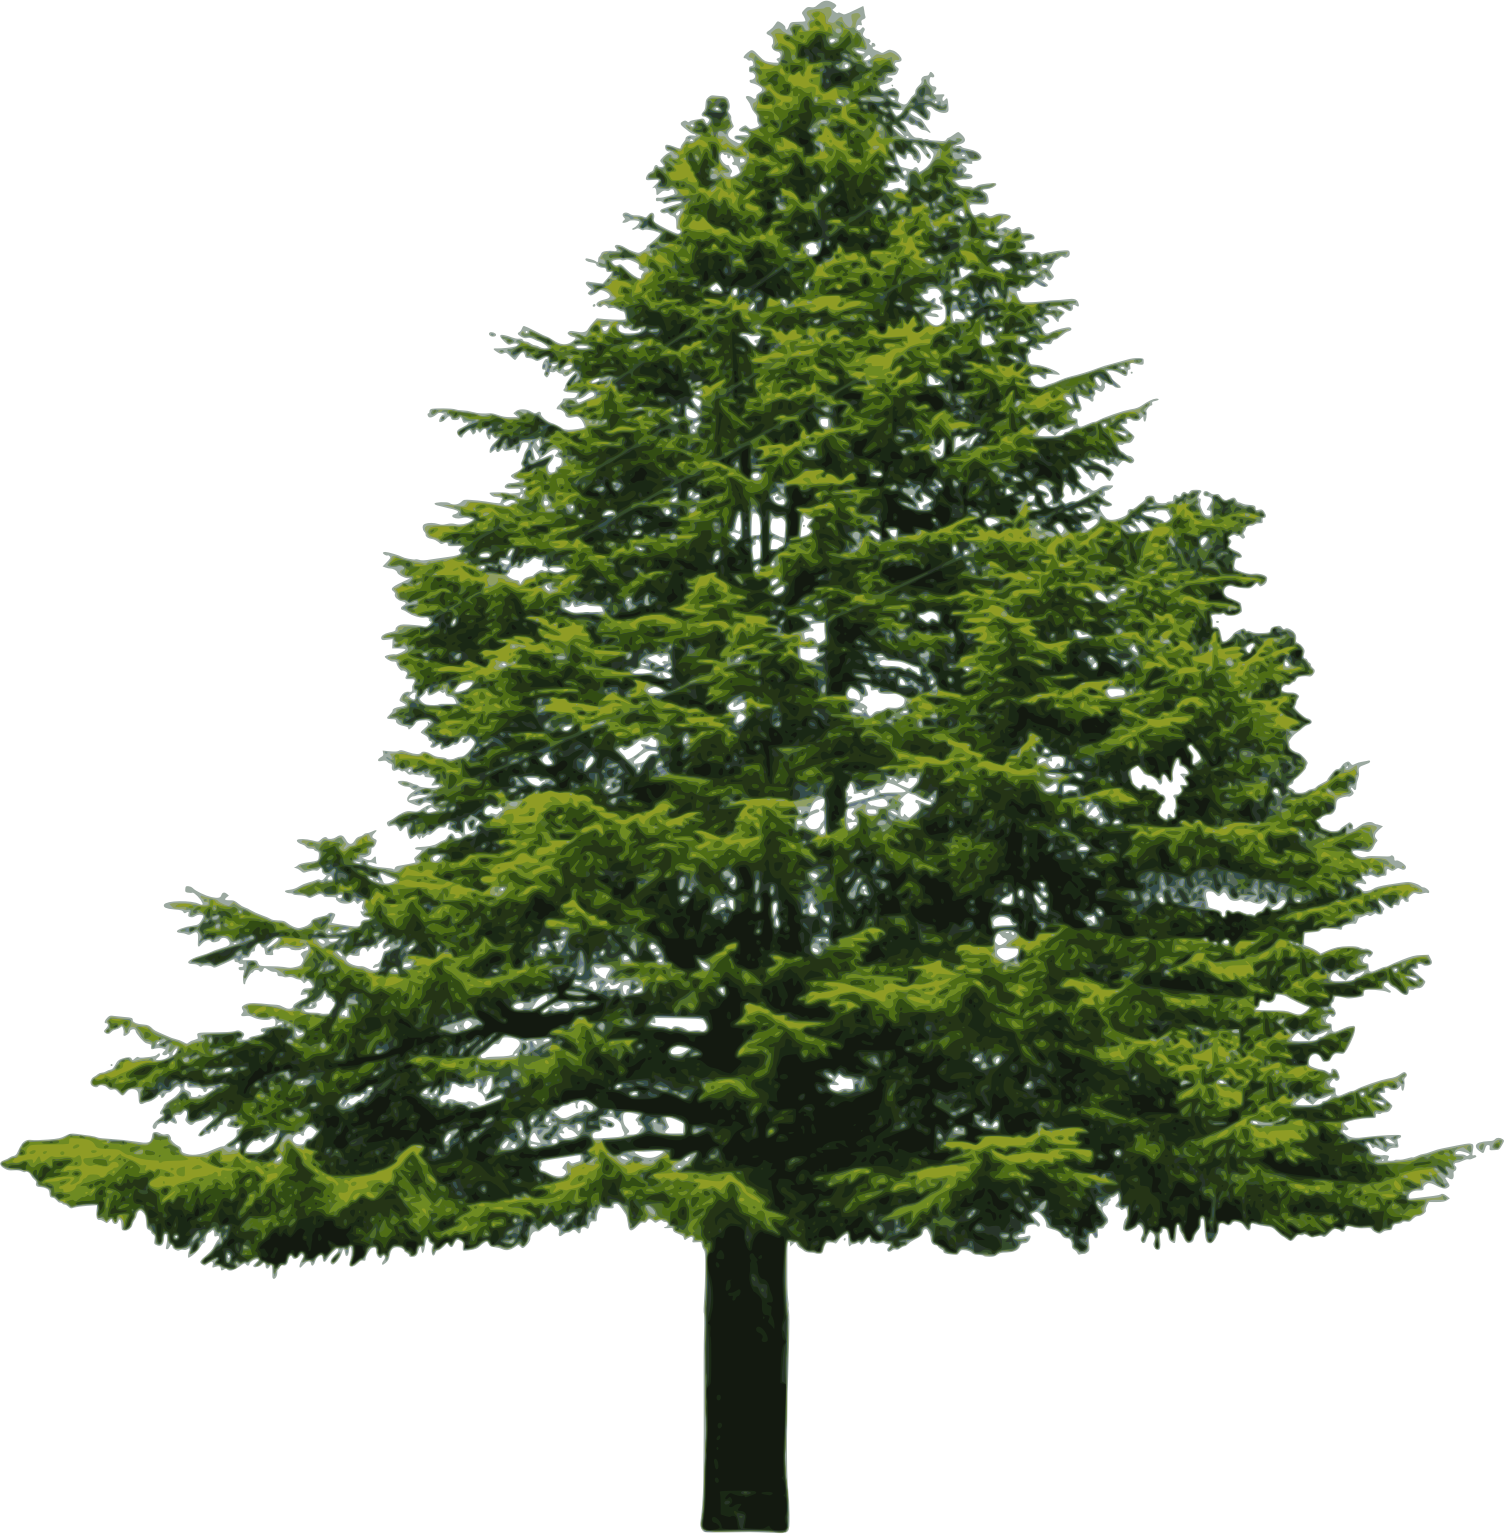 Douglas Fir Trees clipart #16, Download drawings